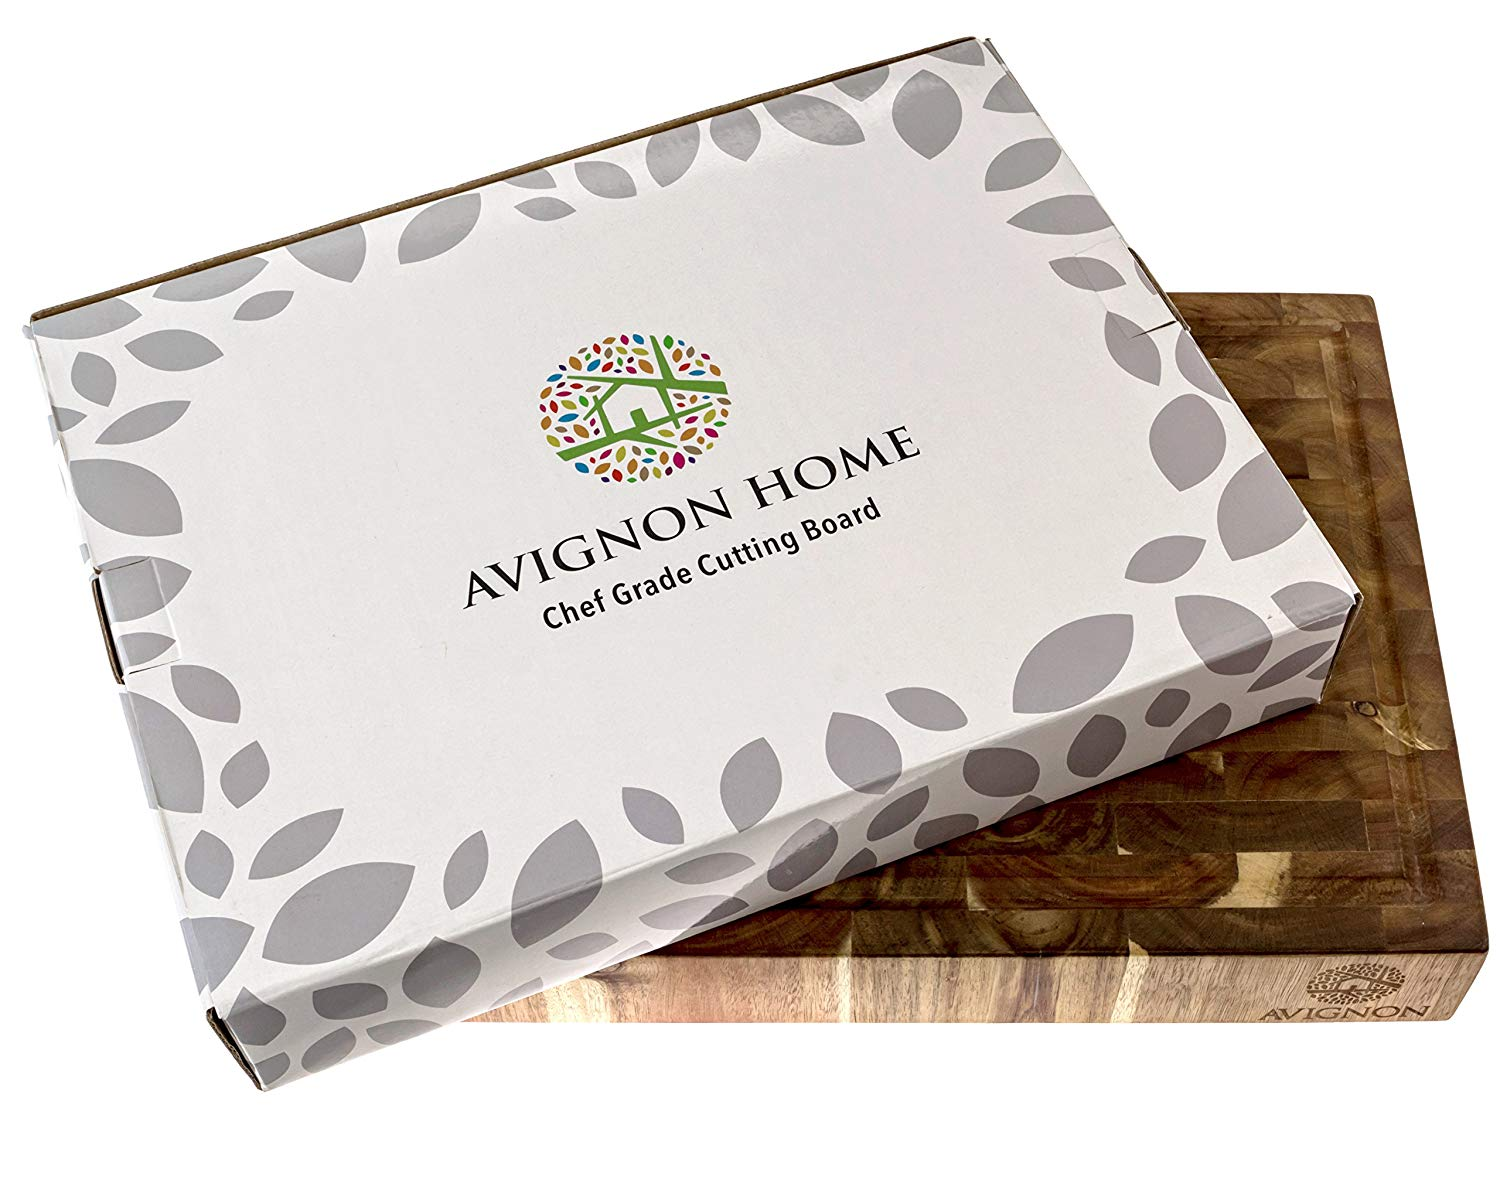 AVIGNON HOME Large End Grain Wooden Cutting Board